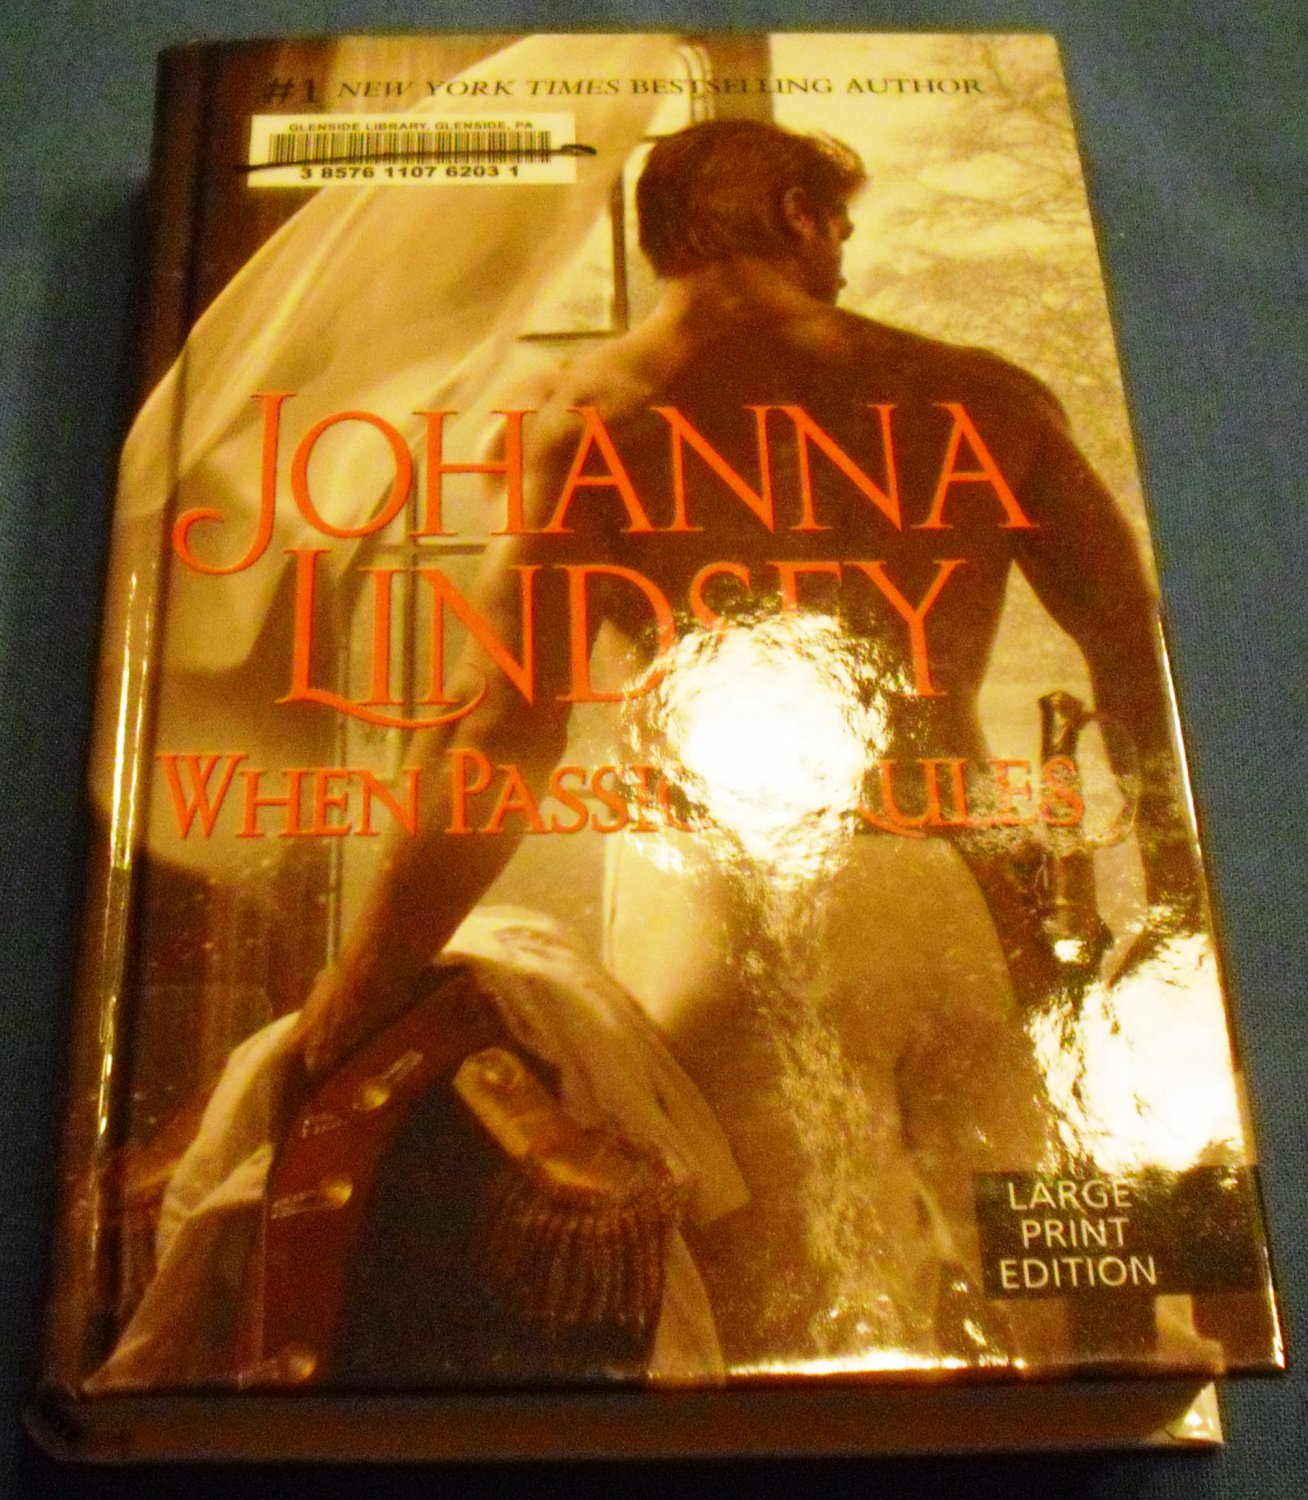 When Passion Rules (Basic) by Johanna Lindsey (Jul 27, 2011) - Large Print